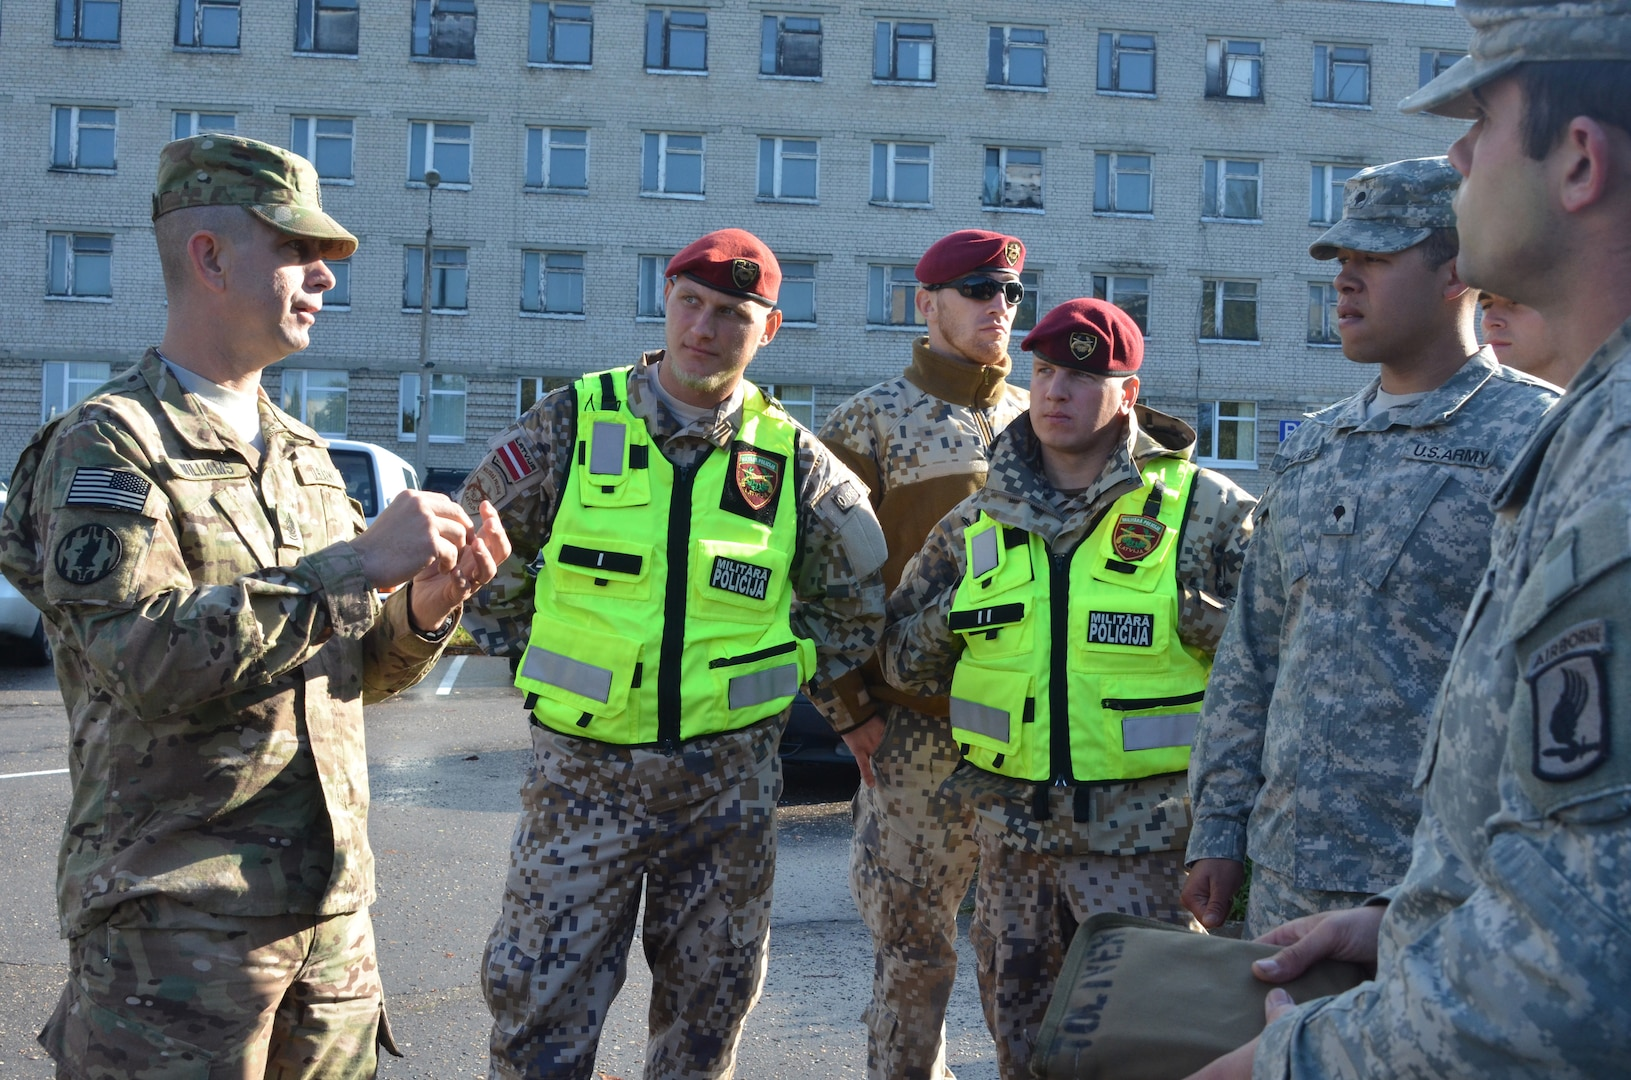 Michigan Army National Guard Sgt. Maj. Edward Williams, with the 210th Military Police Battalion, Taylor, Michigan, helps facilitate traffic accident investigation training along with his Latvian counterparts from the Latvian MP Company, Riga, Latvia, Sept. 23, 2014. The Michigan the Latvian MP's are training together in support of Operation Silver Arrow, in conjunction with United States Army Europe and Operation Northern Resolve.